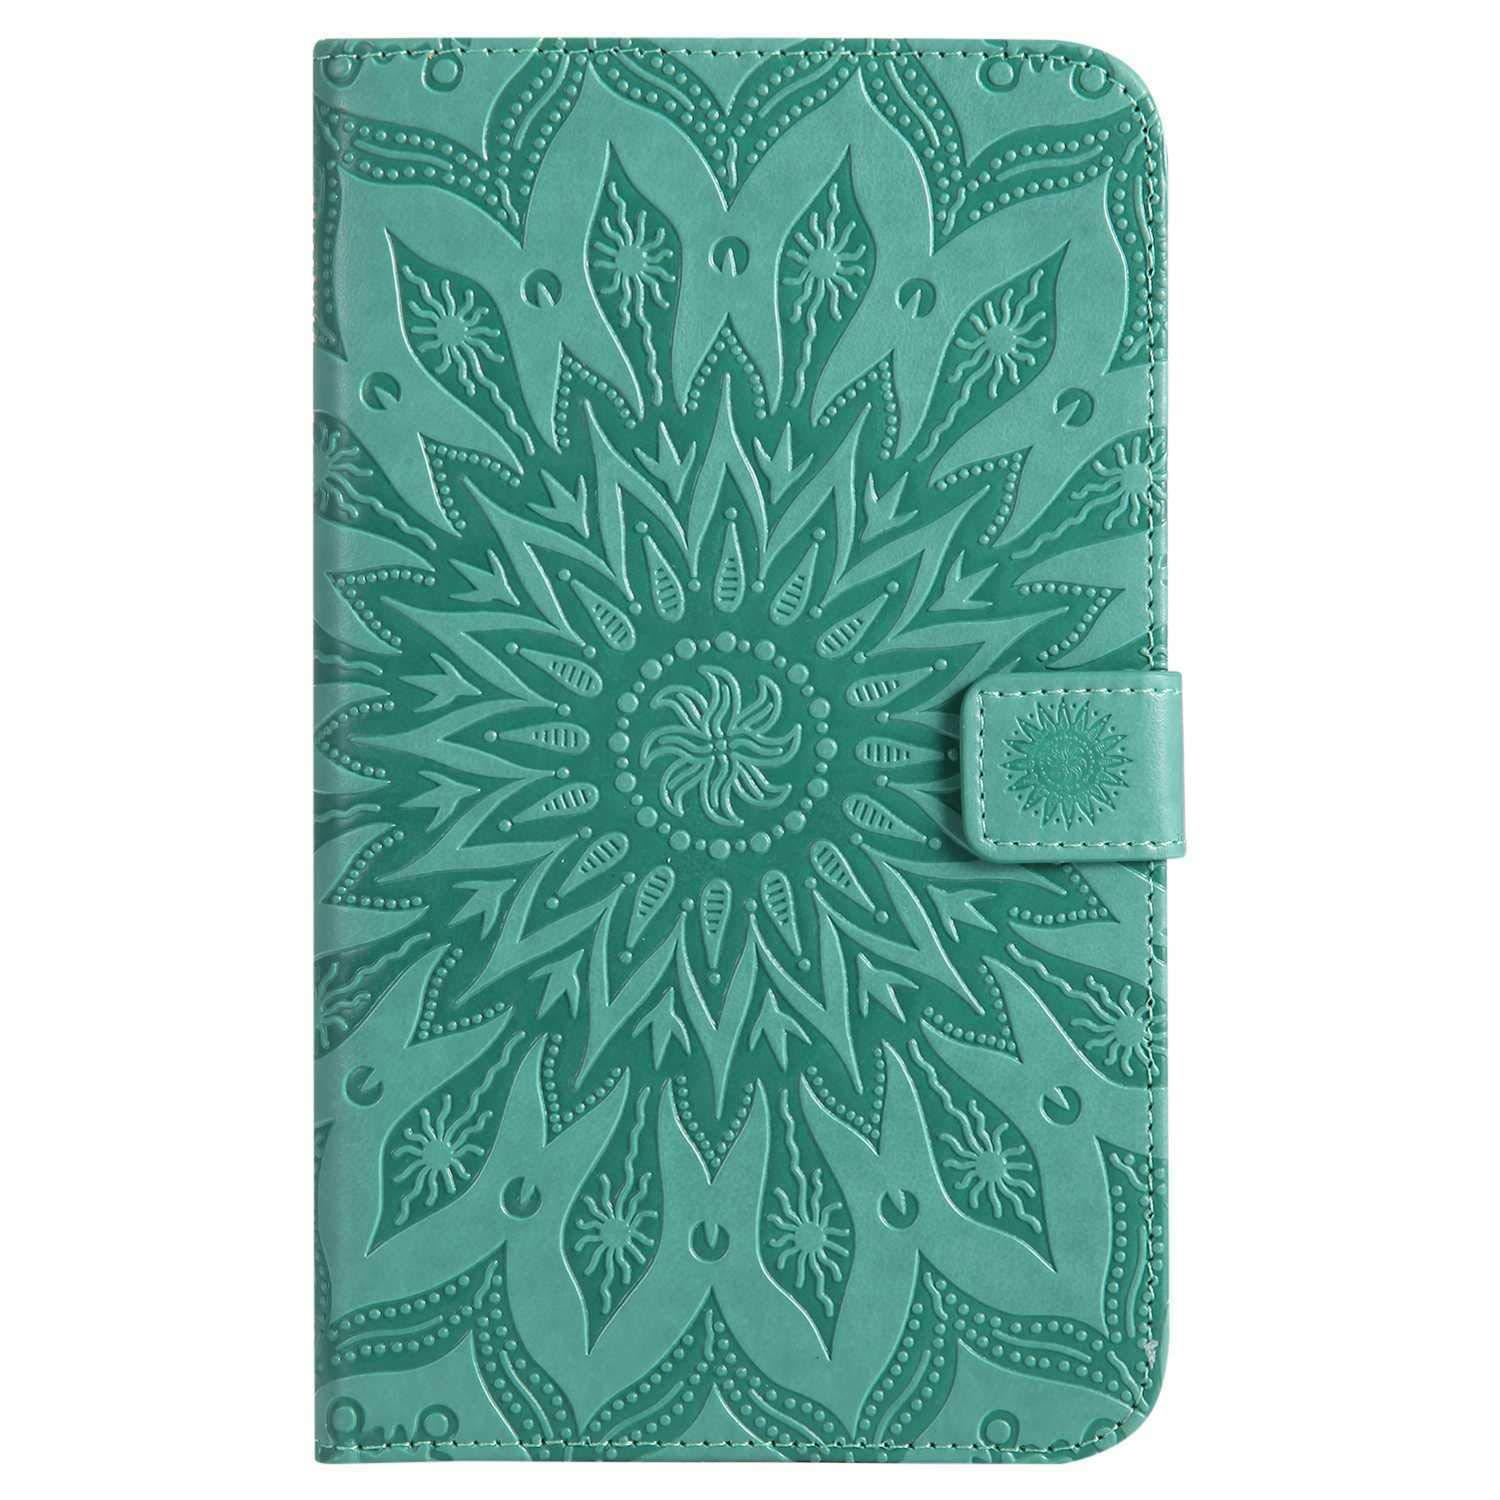 Bear Village Galaxy Tab a 7.0 Inch Case, Anti Scratch Shell with Adjust Stand, Full Body Protective Cover for Samsung Galaxy Tab a 7.0 Inch, Green by Bear Village